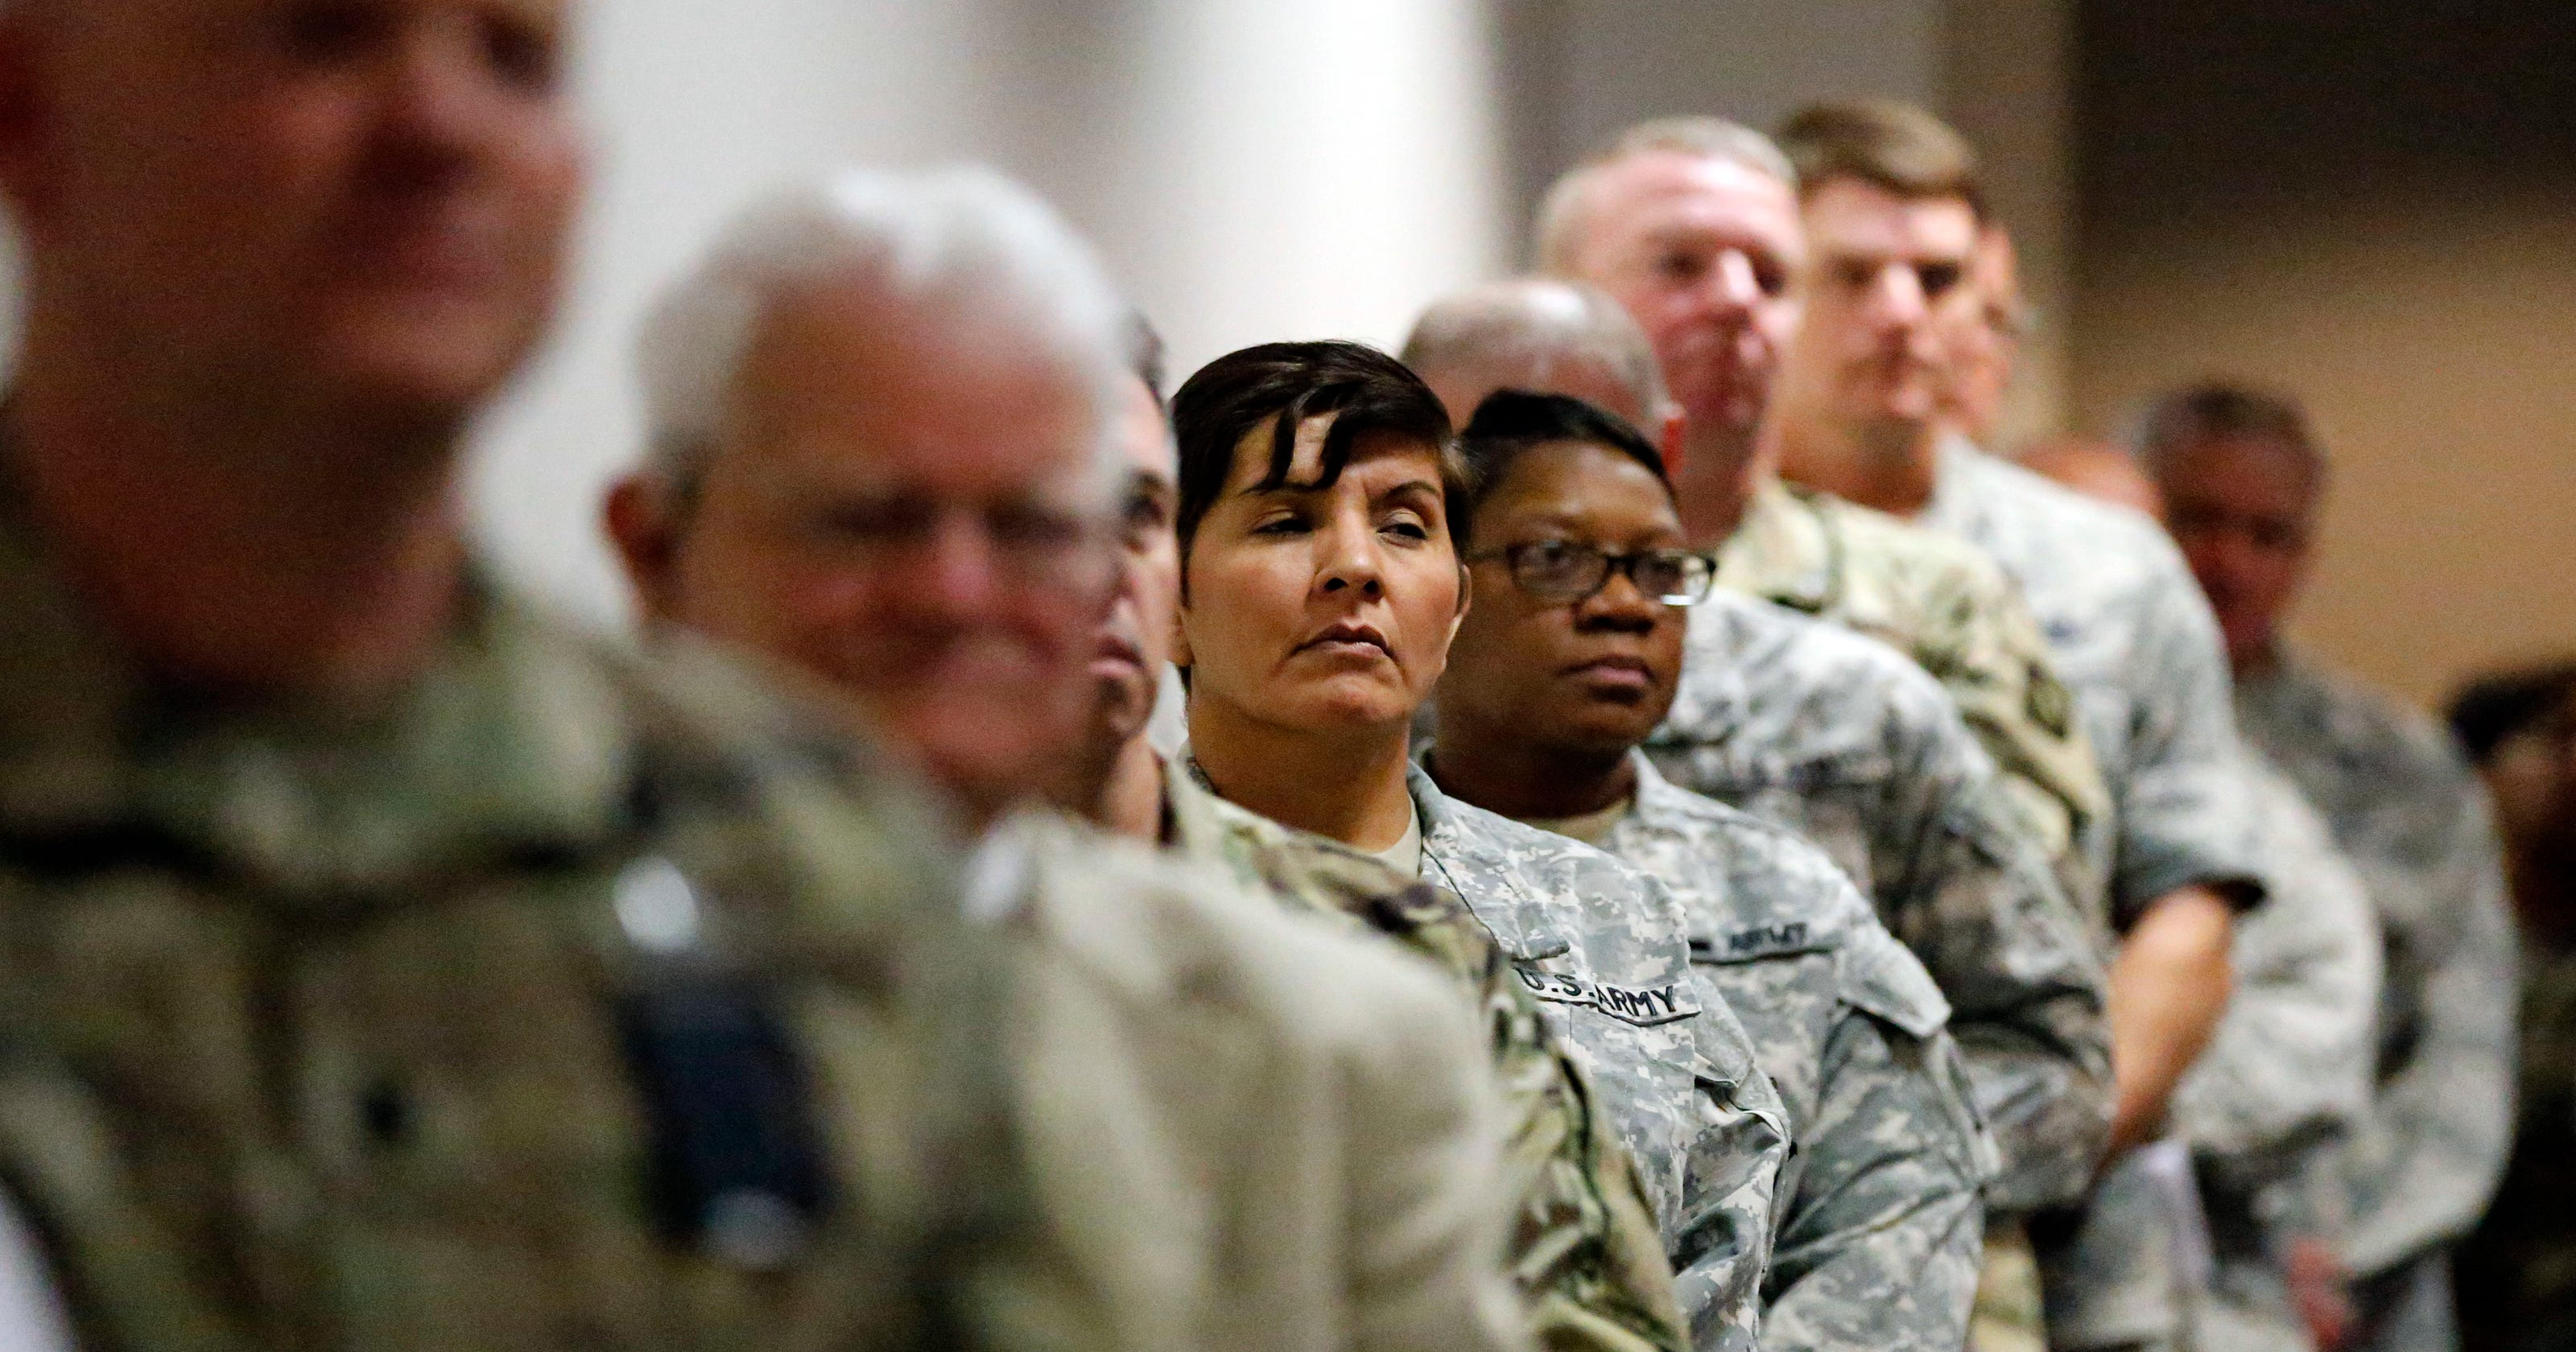 4,000-plus Mississippi soldiers set for year-long deployment